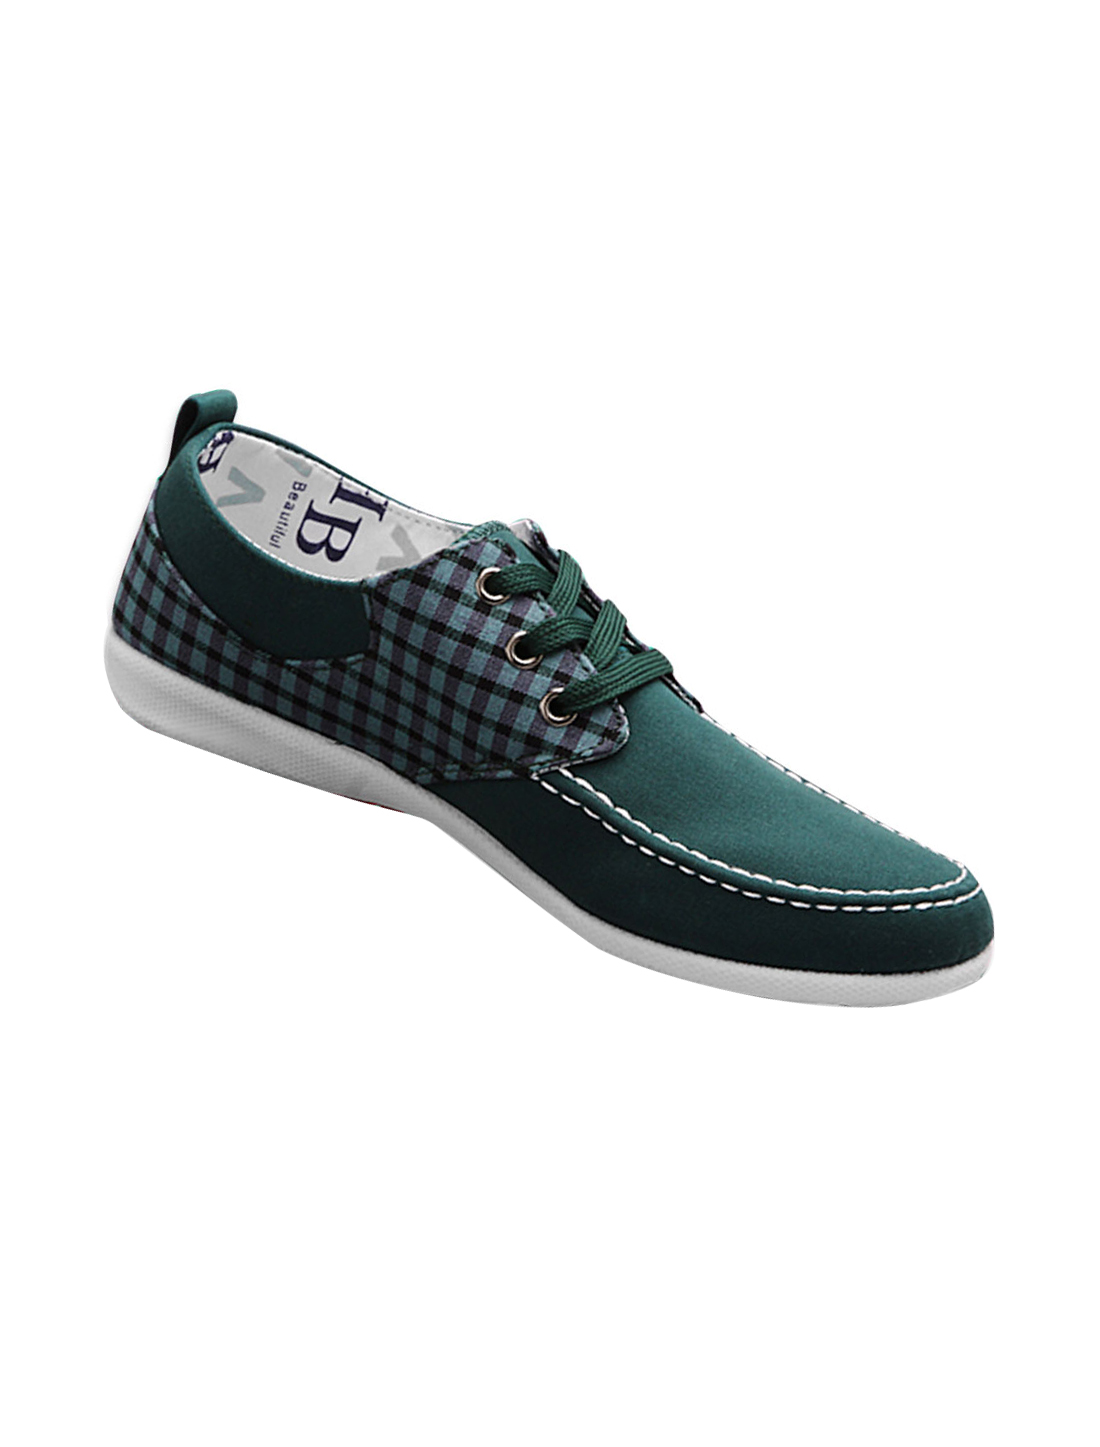 Men Round Toe Plaids Detail Stylish Canvas Shoes Dark Green US Size 10.5